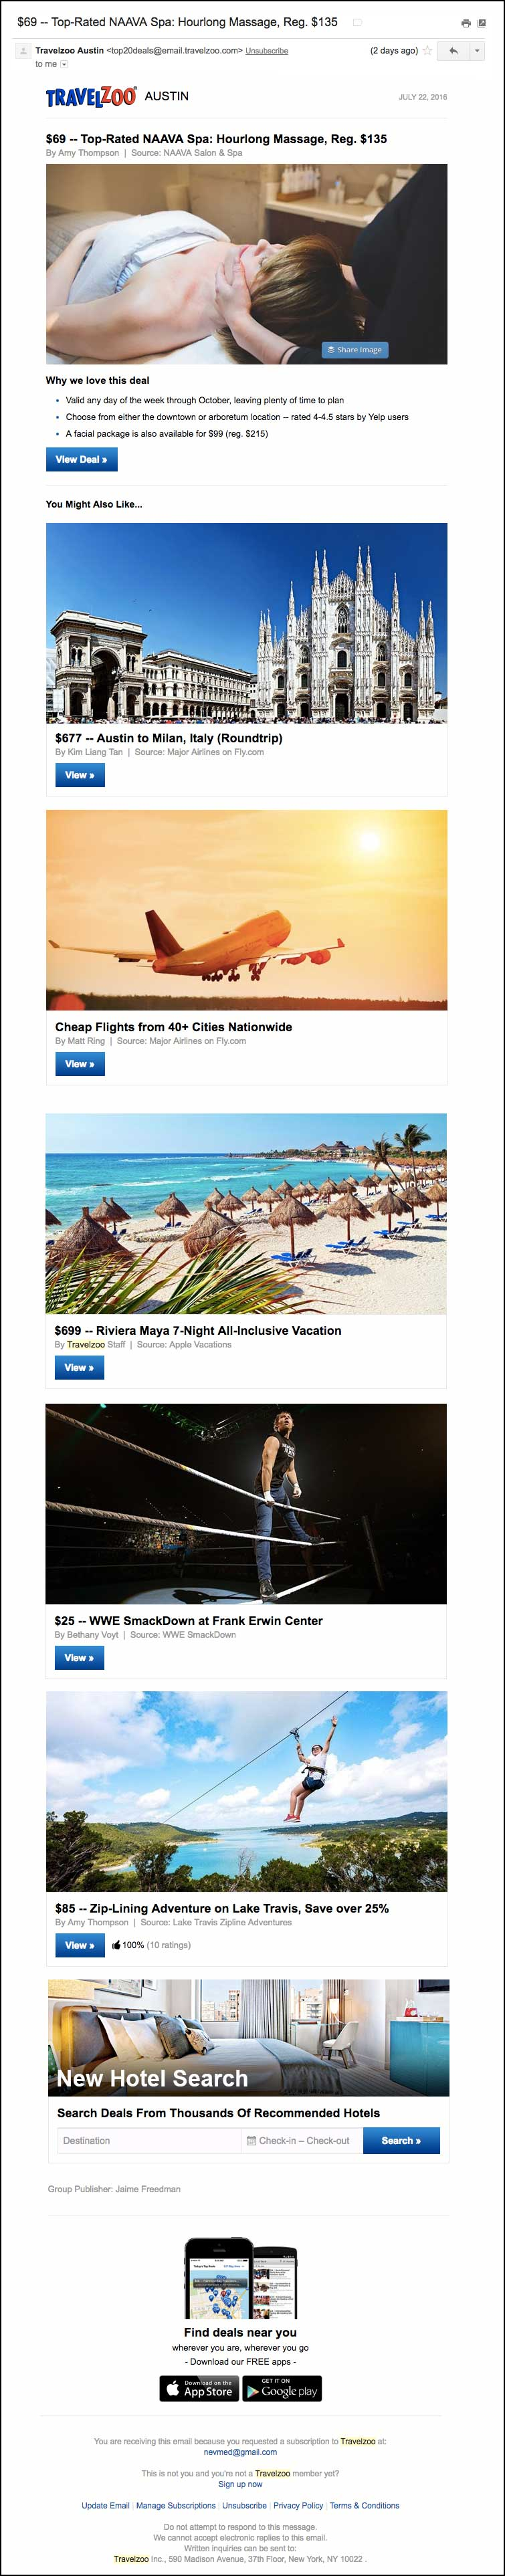 TravelZoo newsletter example